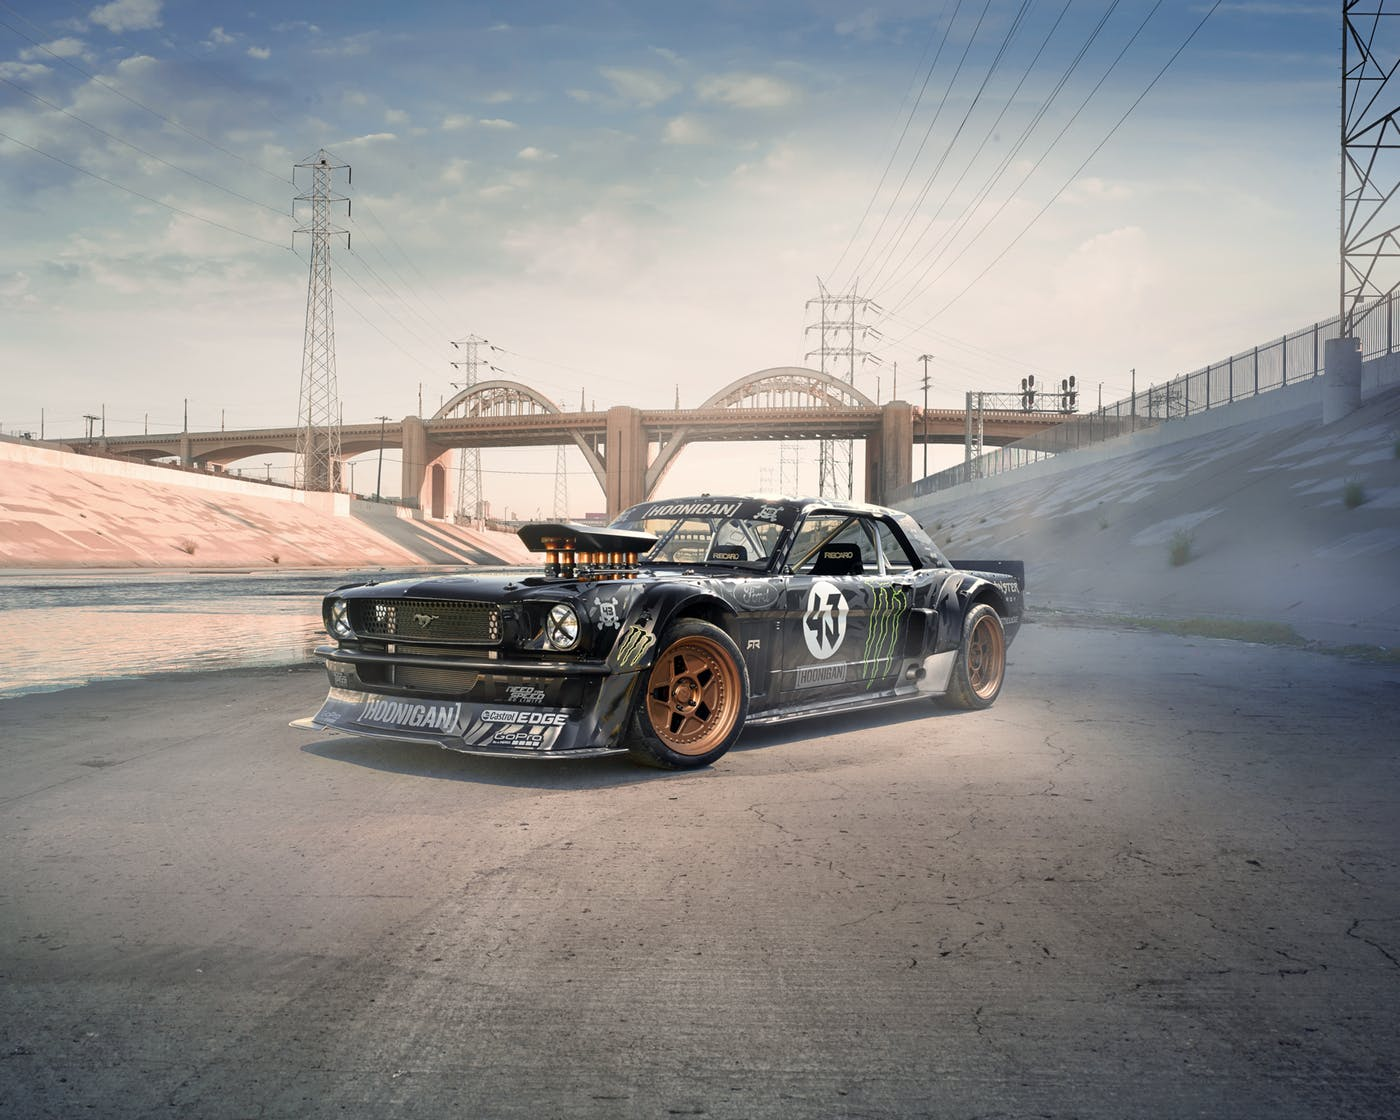 Forza Motorsports Releases The Hoonigan Car Pack That